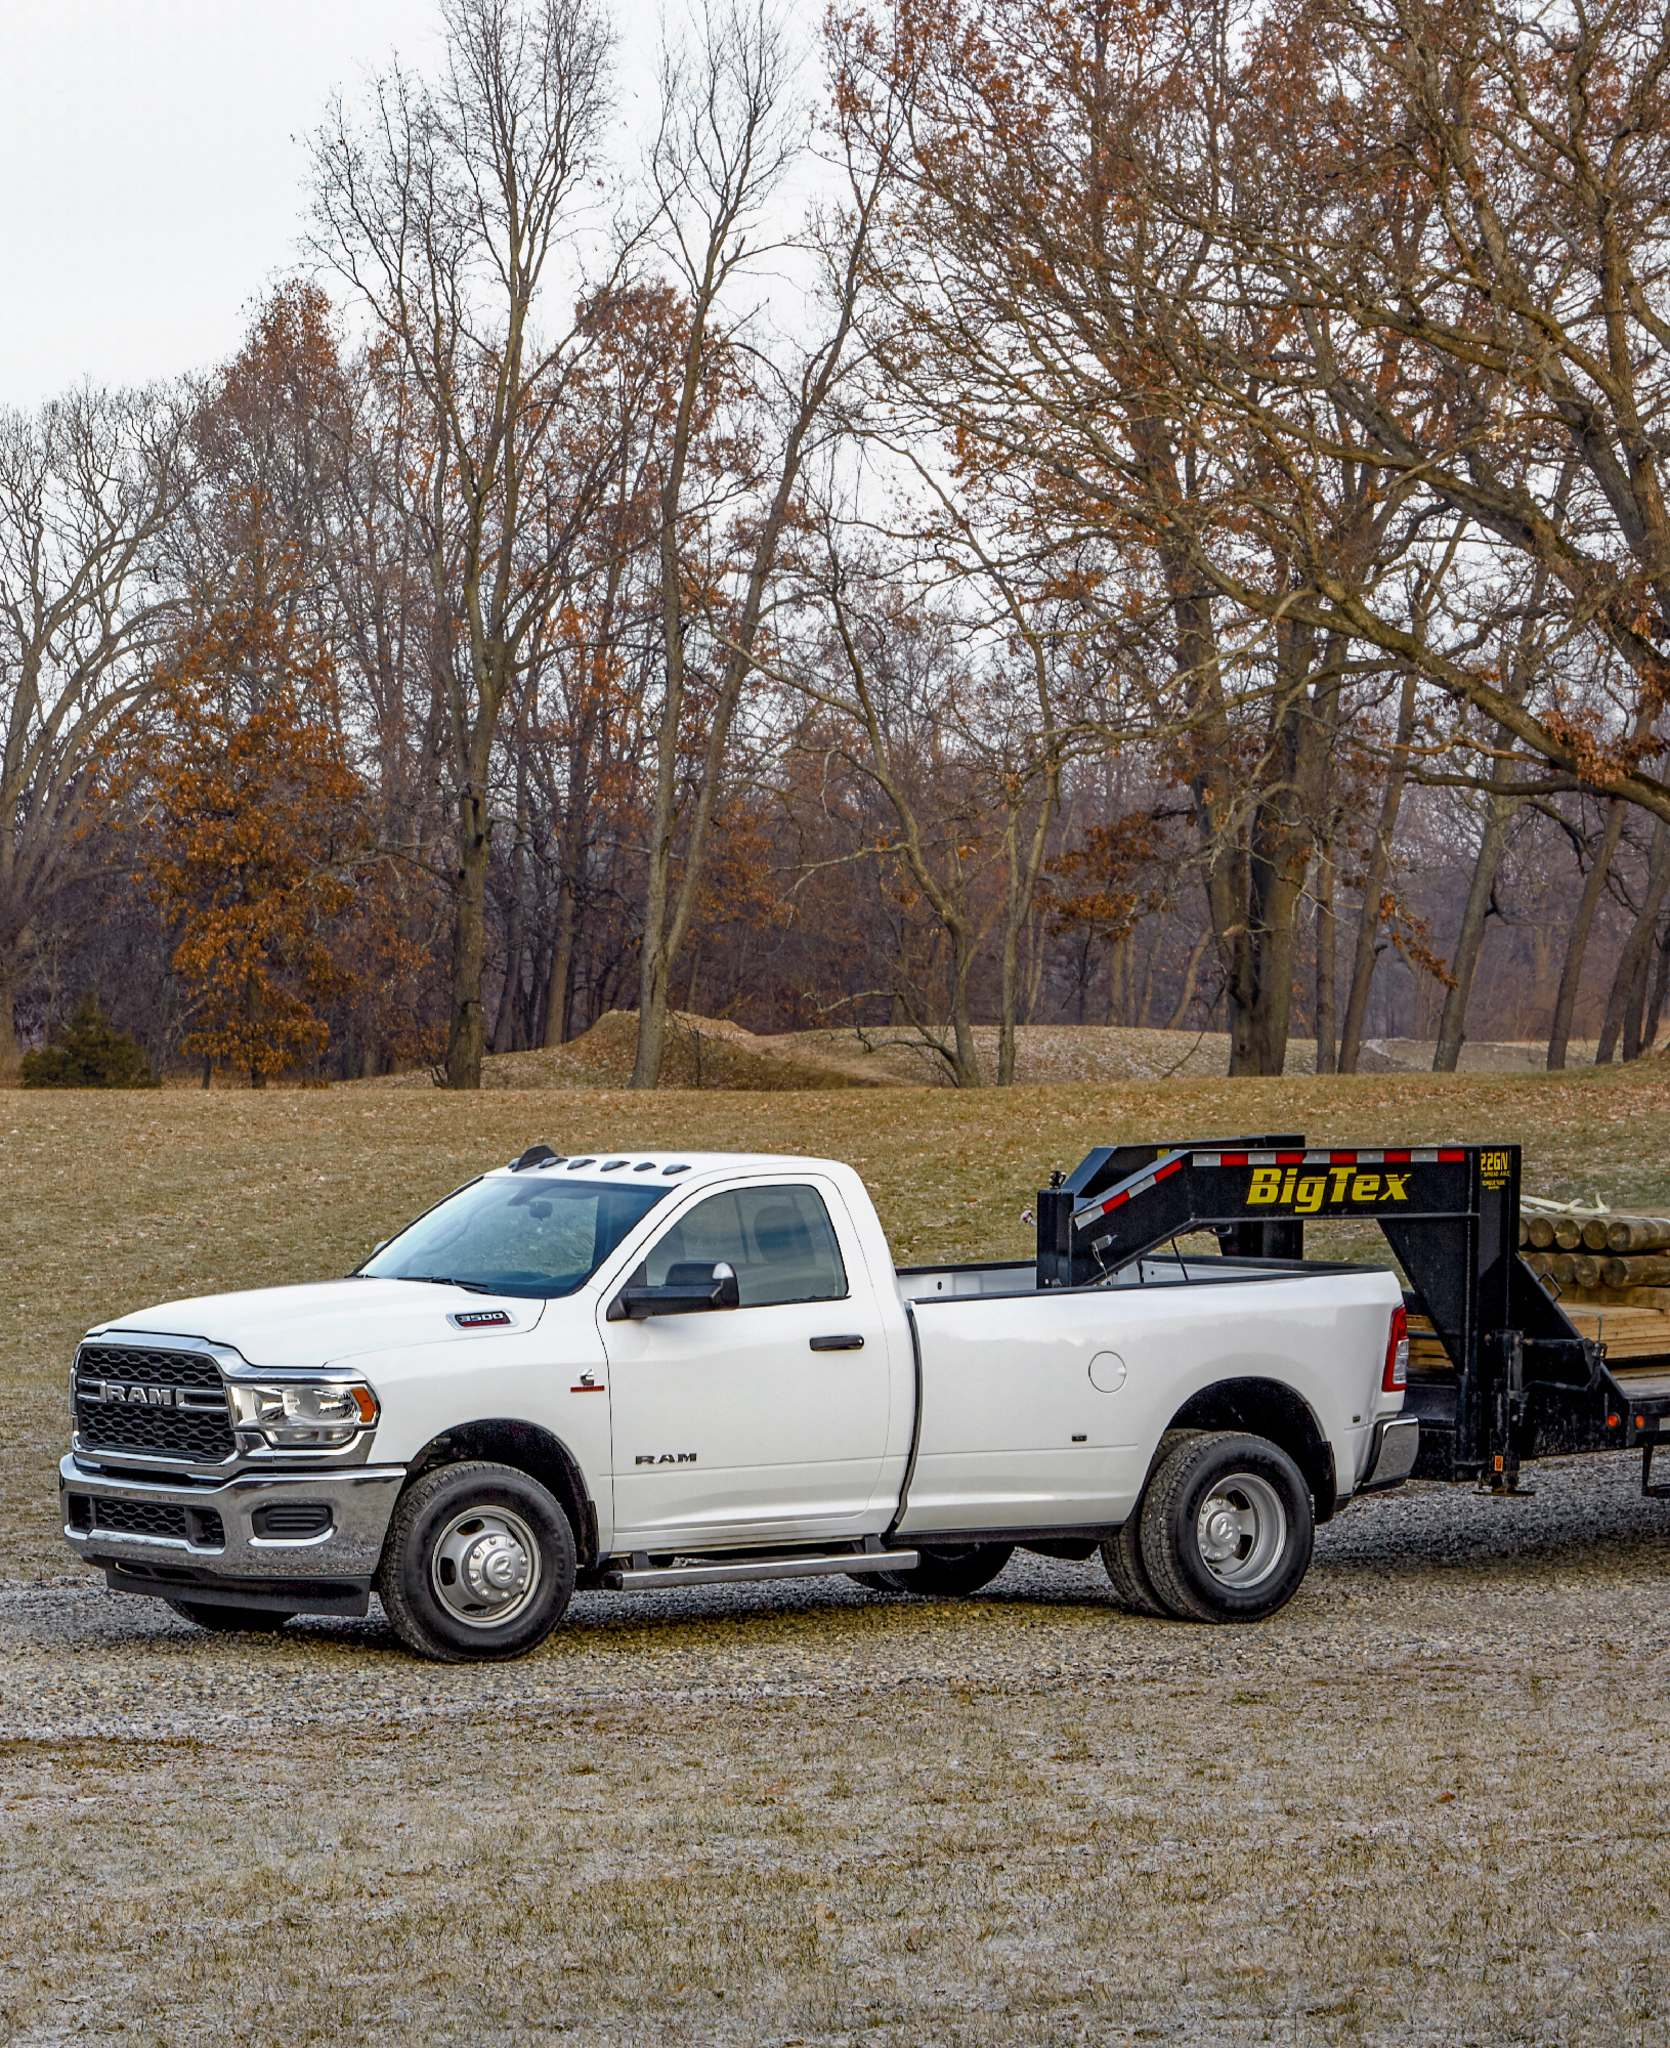 The new Ram 3500 Tradesman dually regular cab can be configured to tow more than 35,000 pounds.